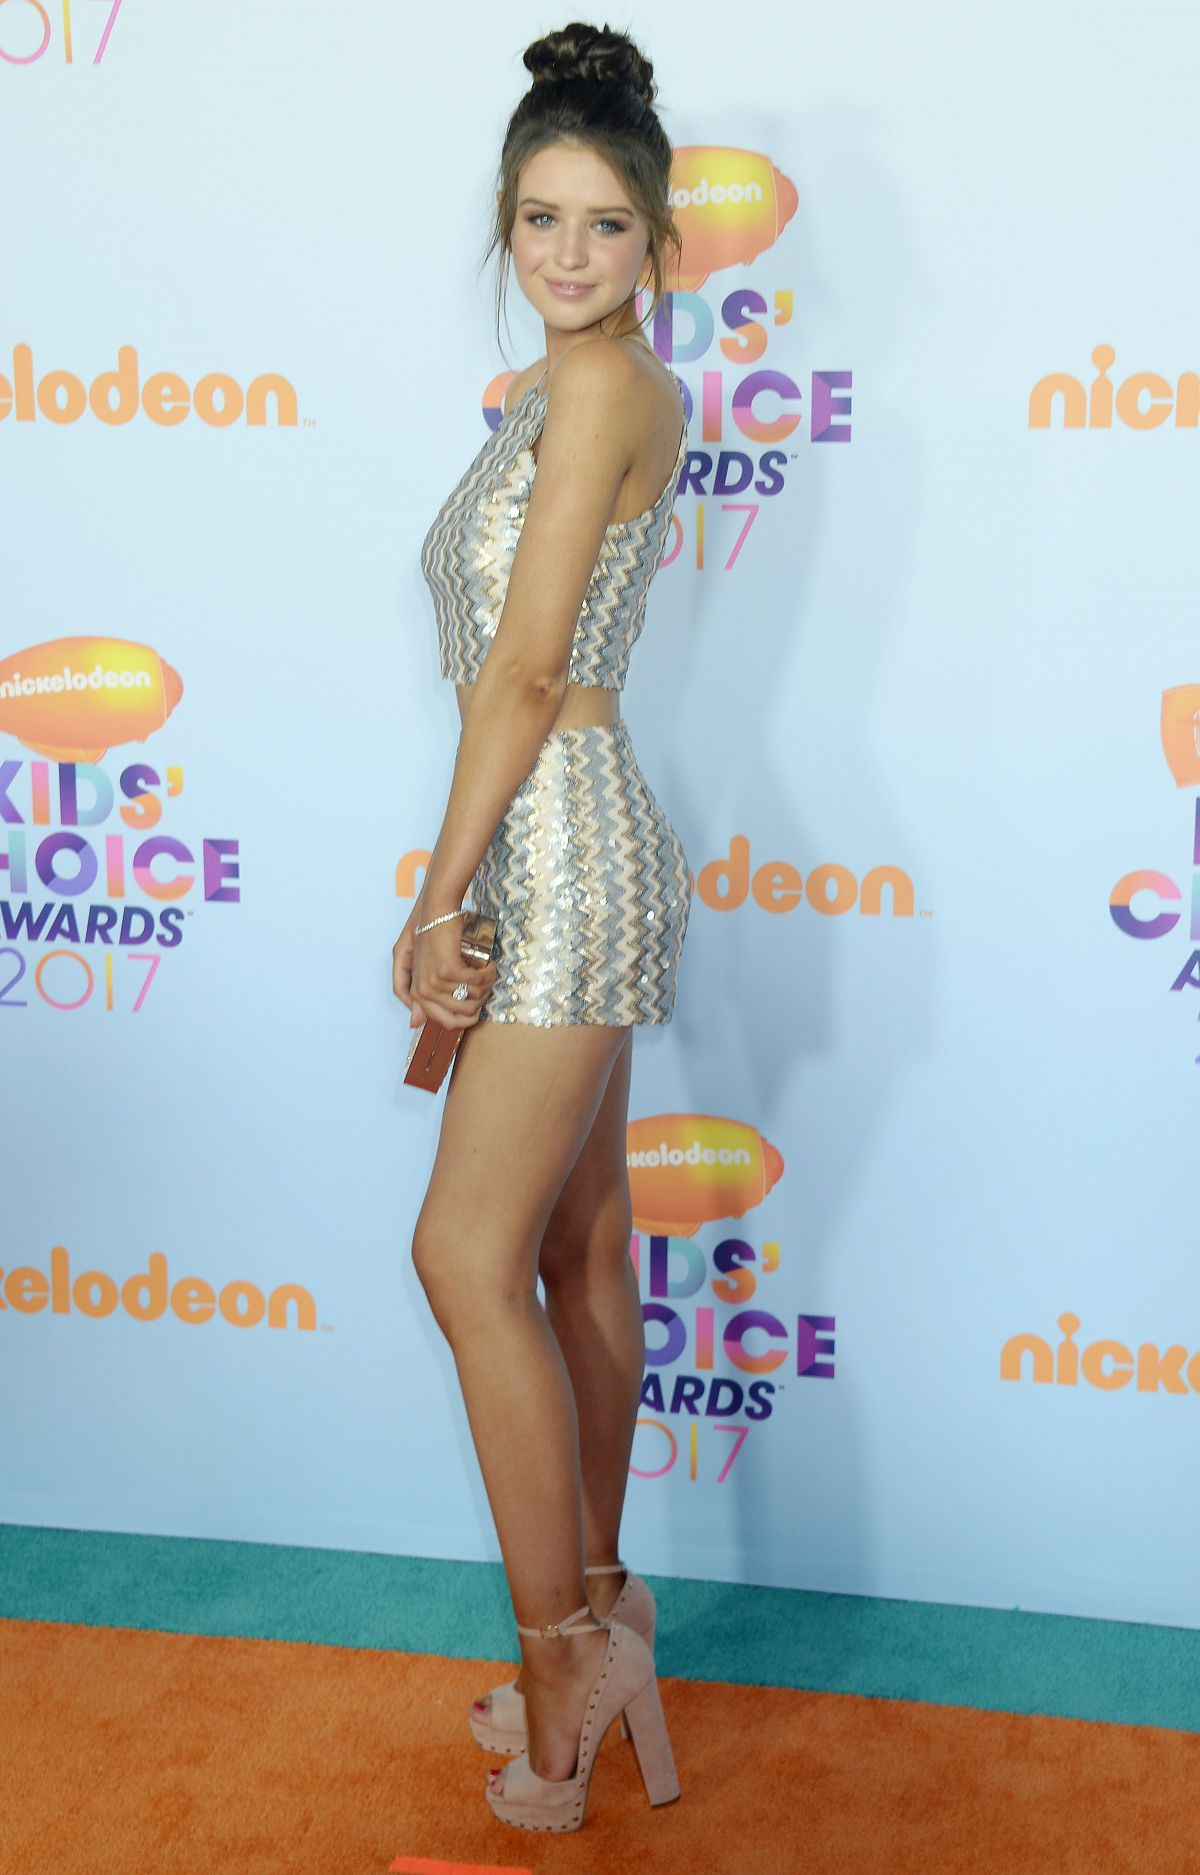 JESS CONTE at Nickelodeon 2017 Kids' Choice Awards in Los Angeles 03/11/2017